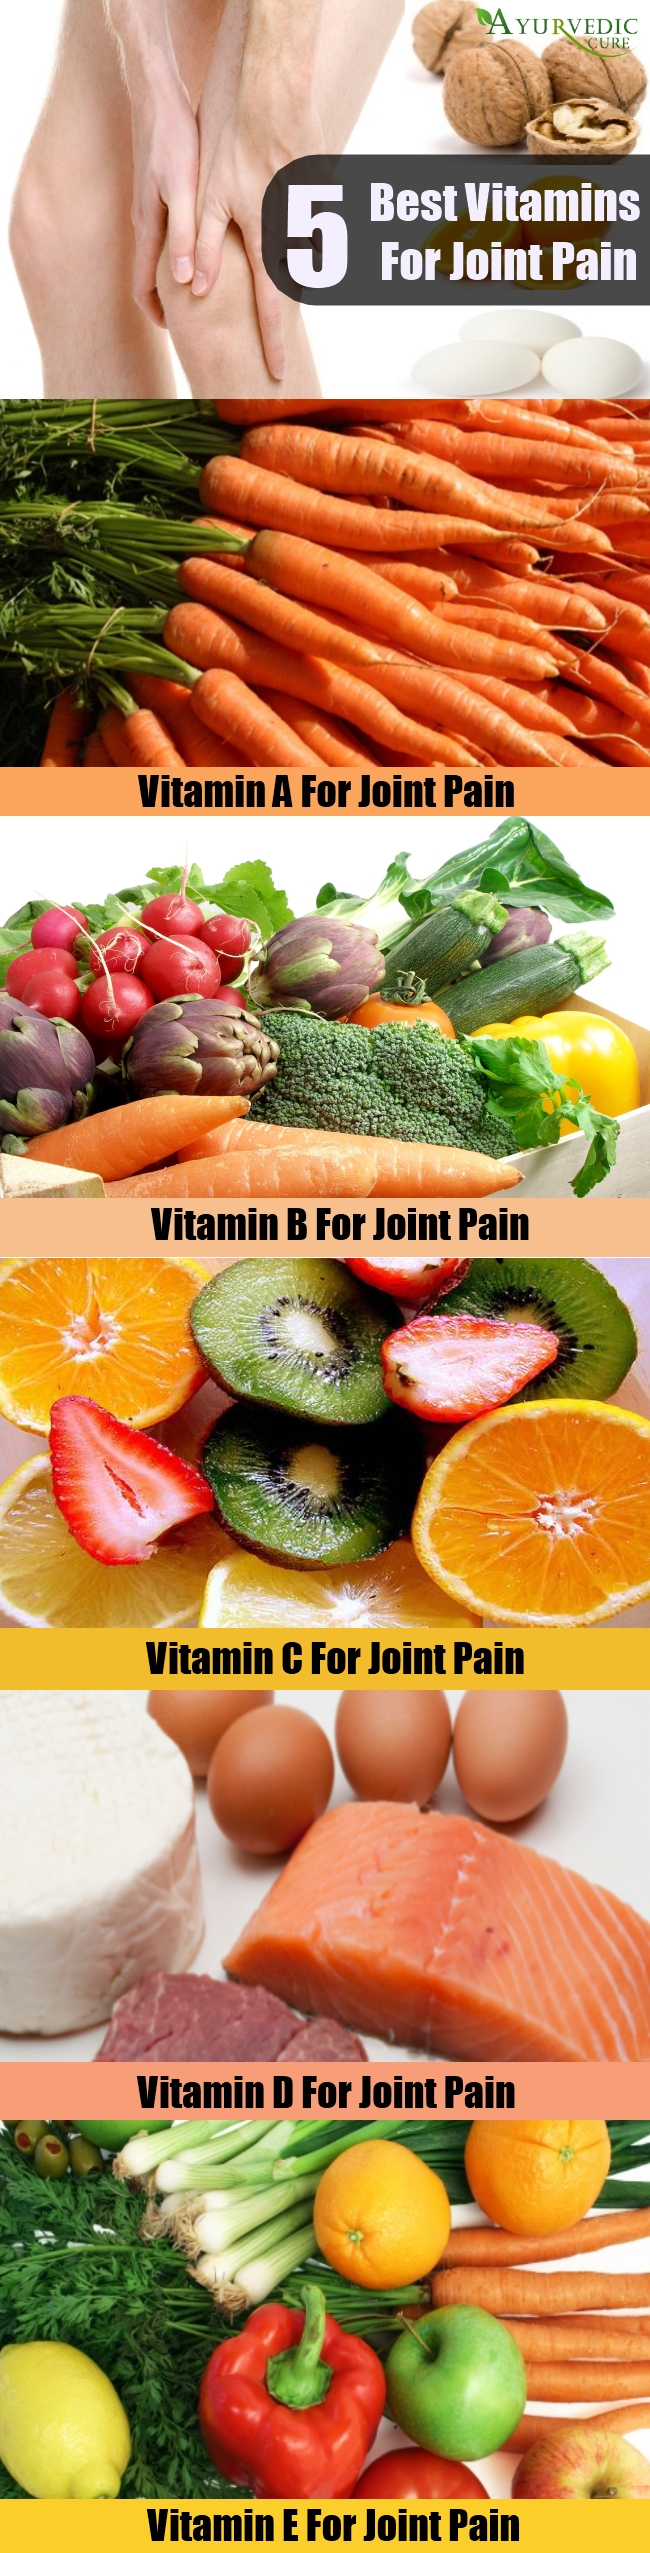 5 Best Vitamins For Joint Pain